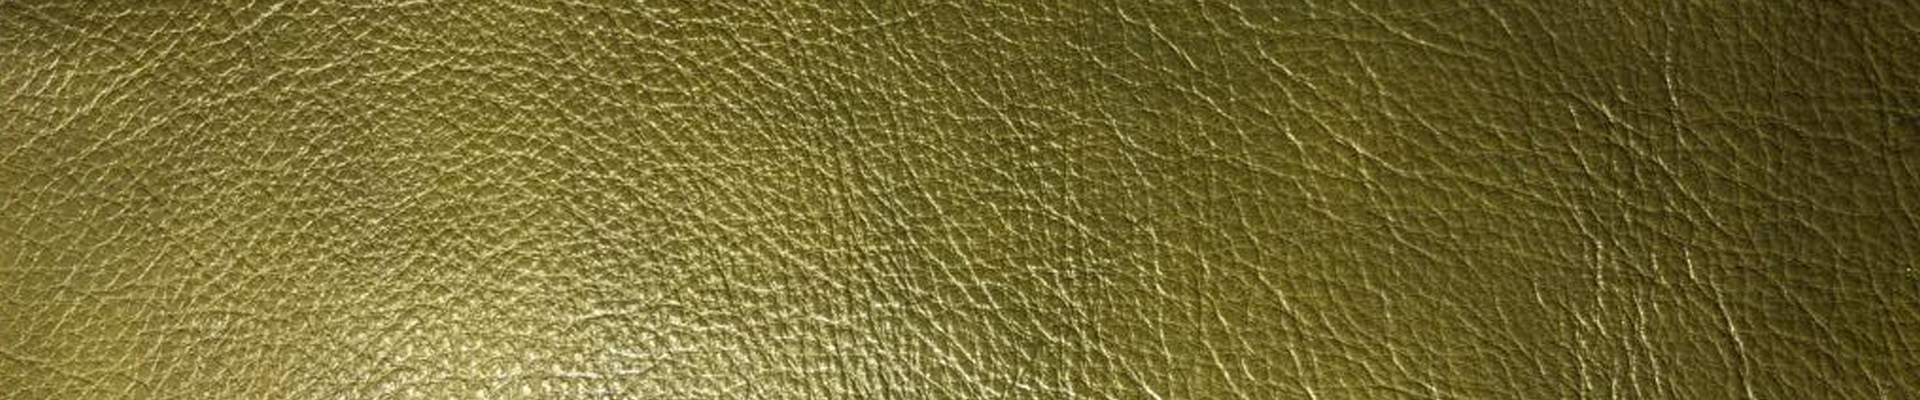 Leather is a recycled product with ecological value